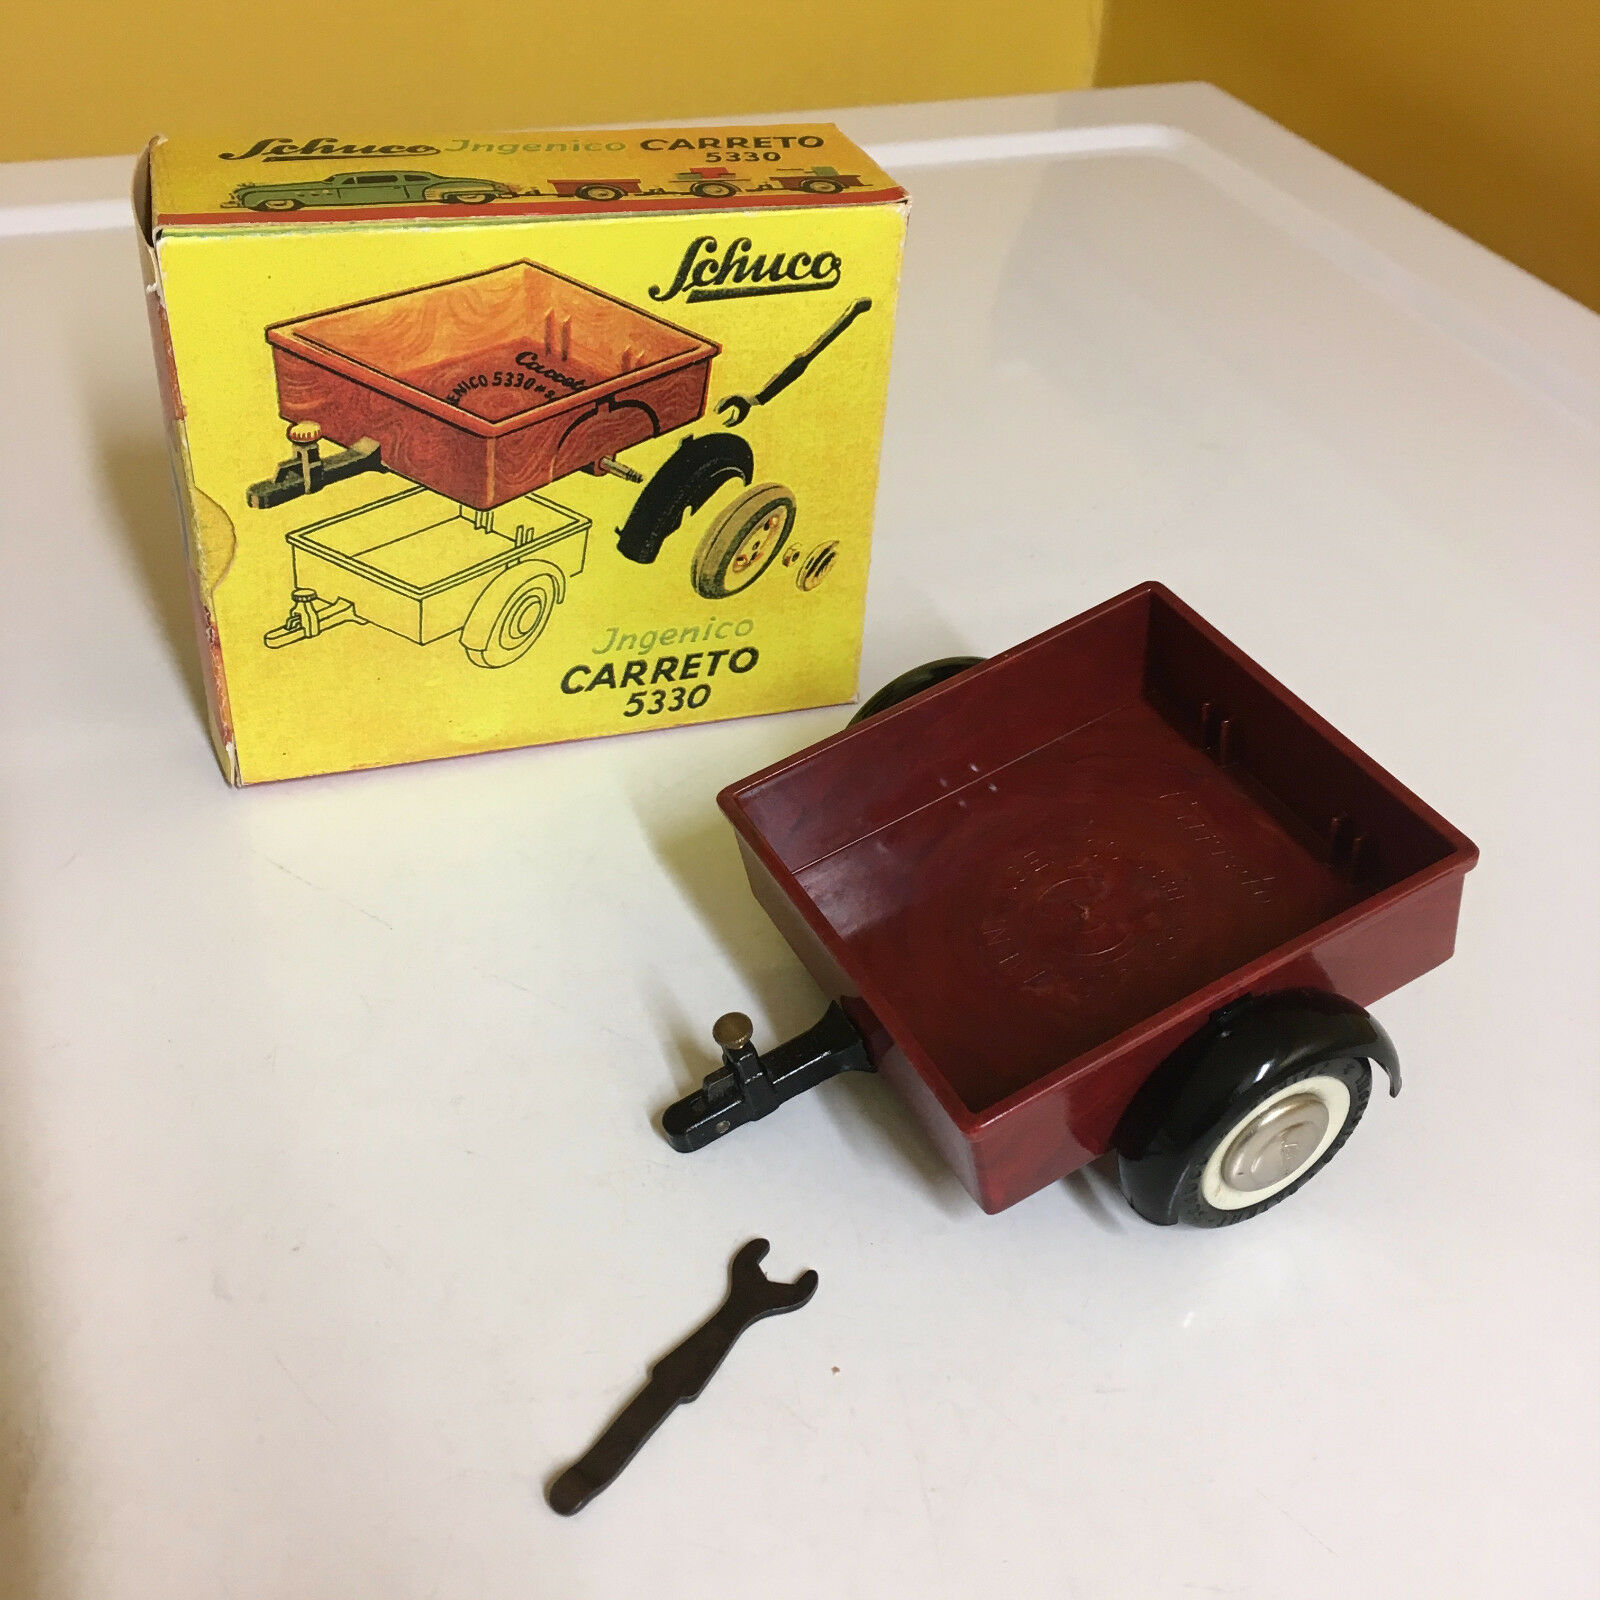 SCHUCO VINTAGE INGENICO CARRETO 5330 (TRAILER) FOR INGENICO SERIES OF MODEL CARS